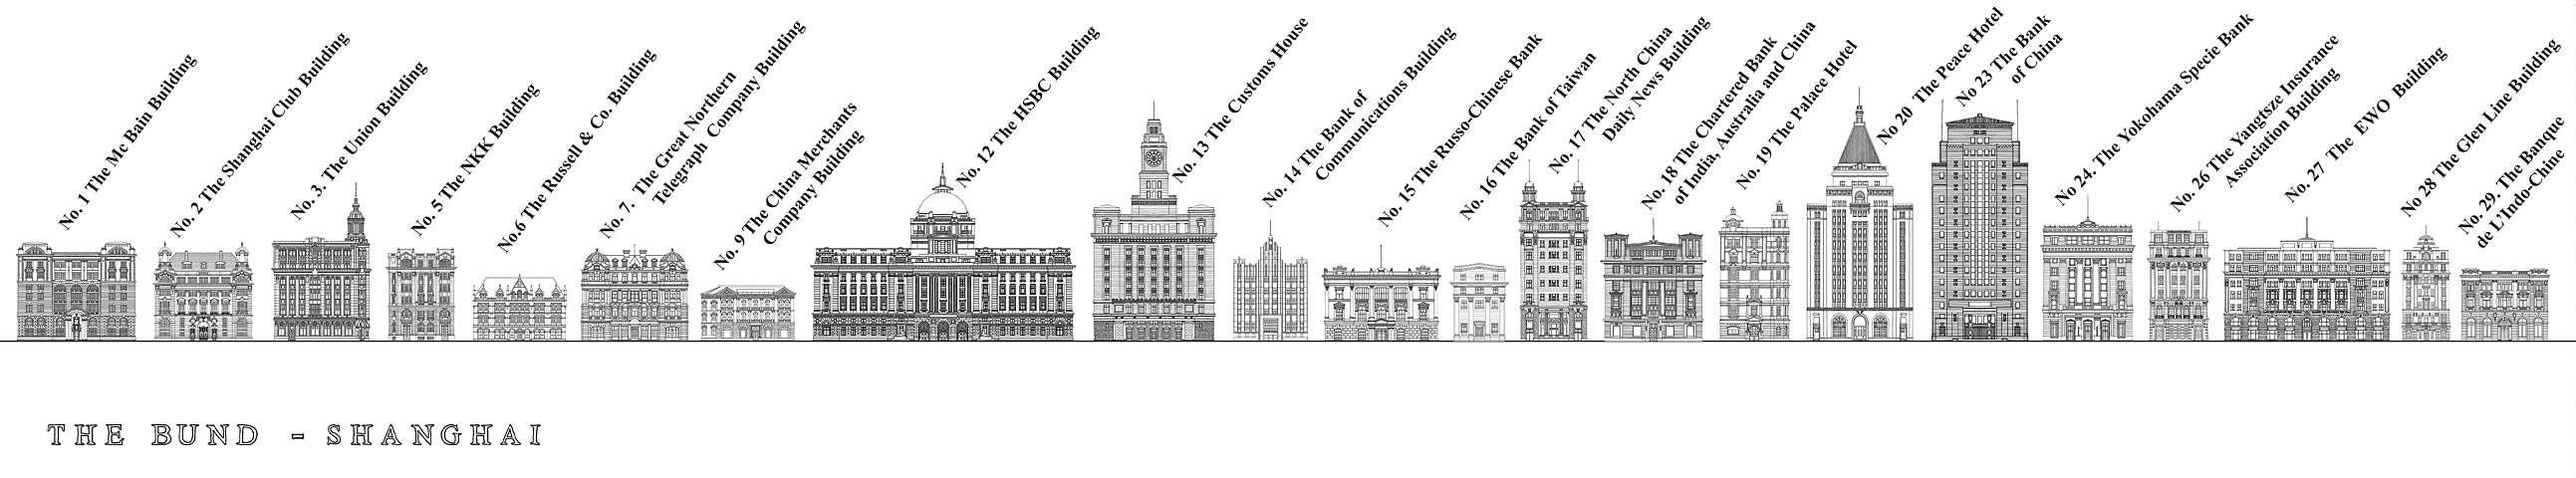 The Buildings on the Bund